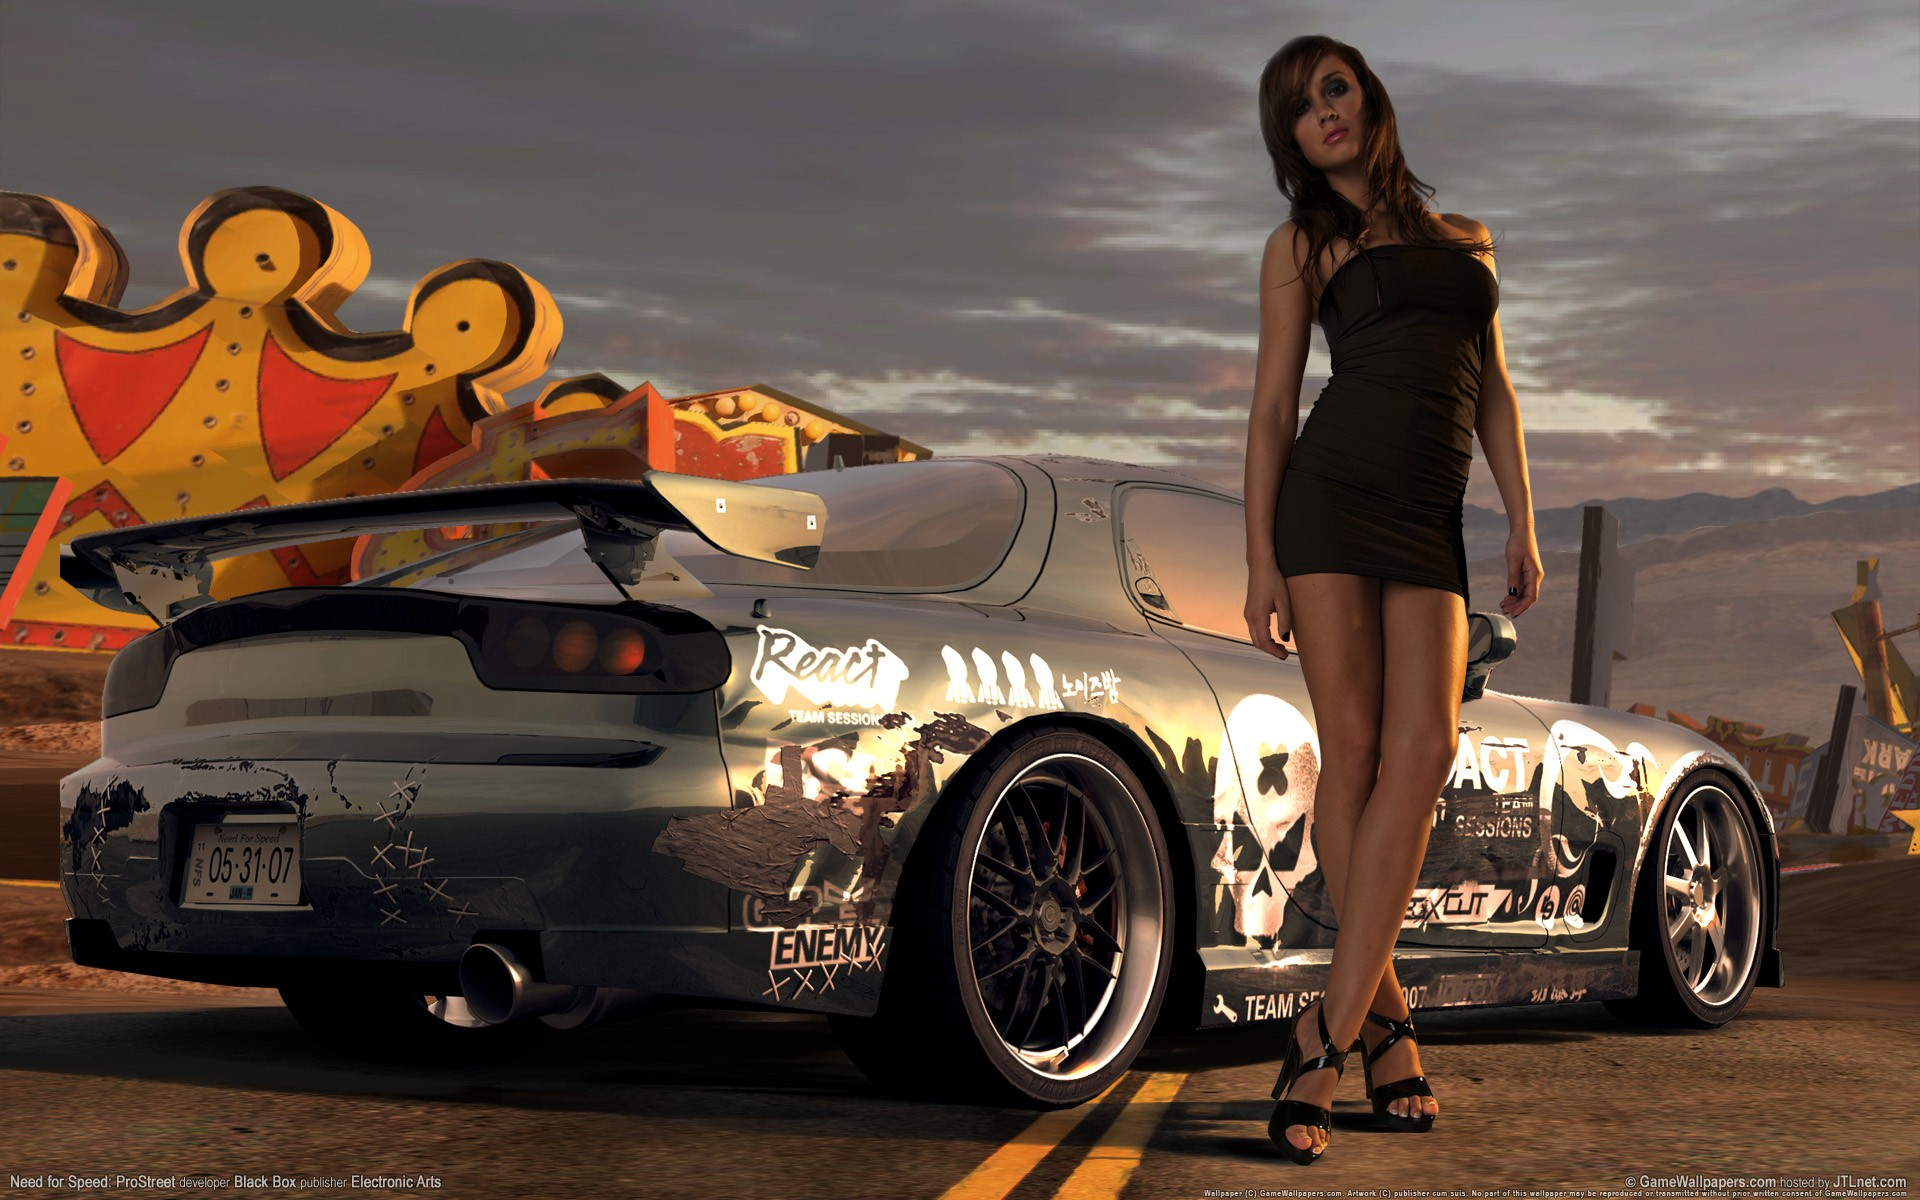 need for speed prostreet девушка